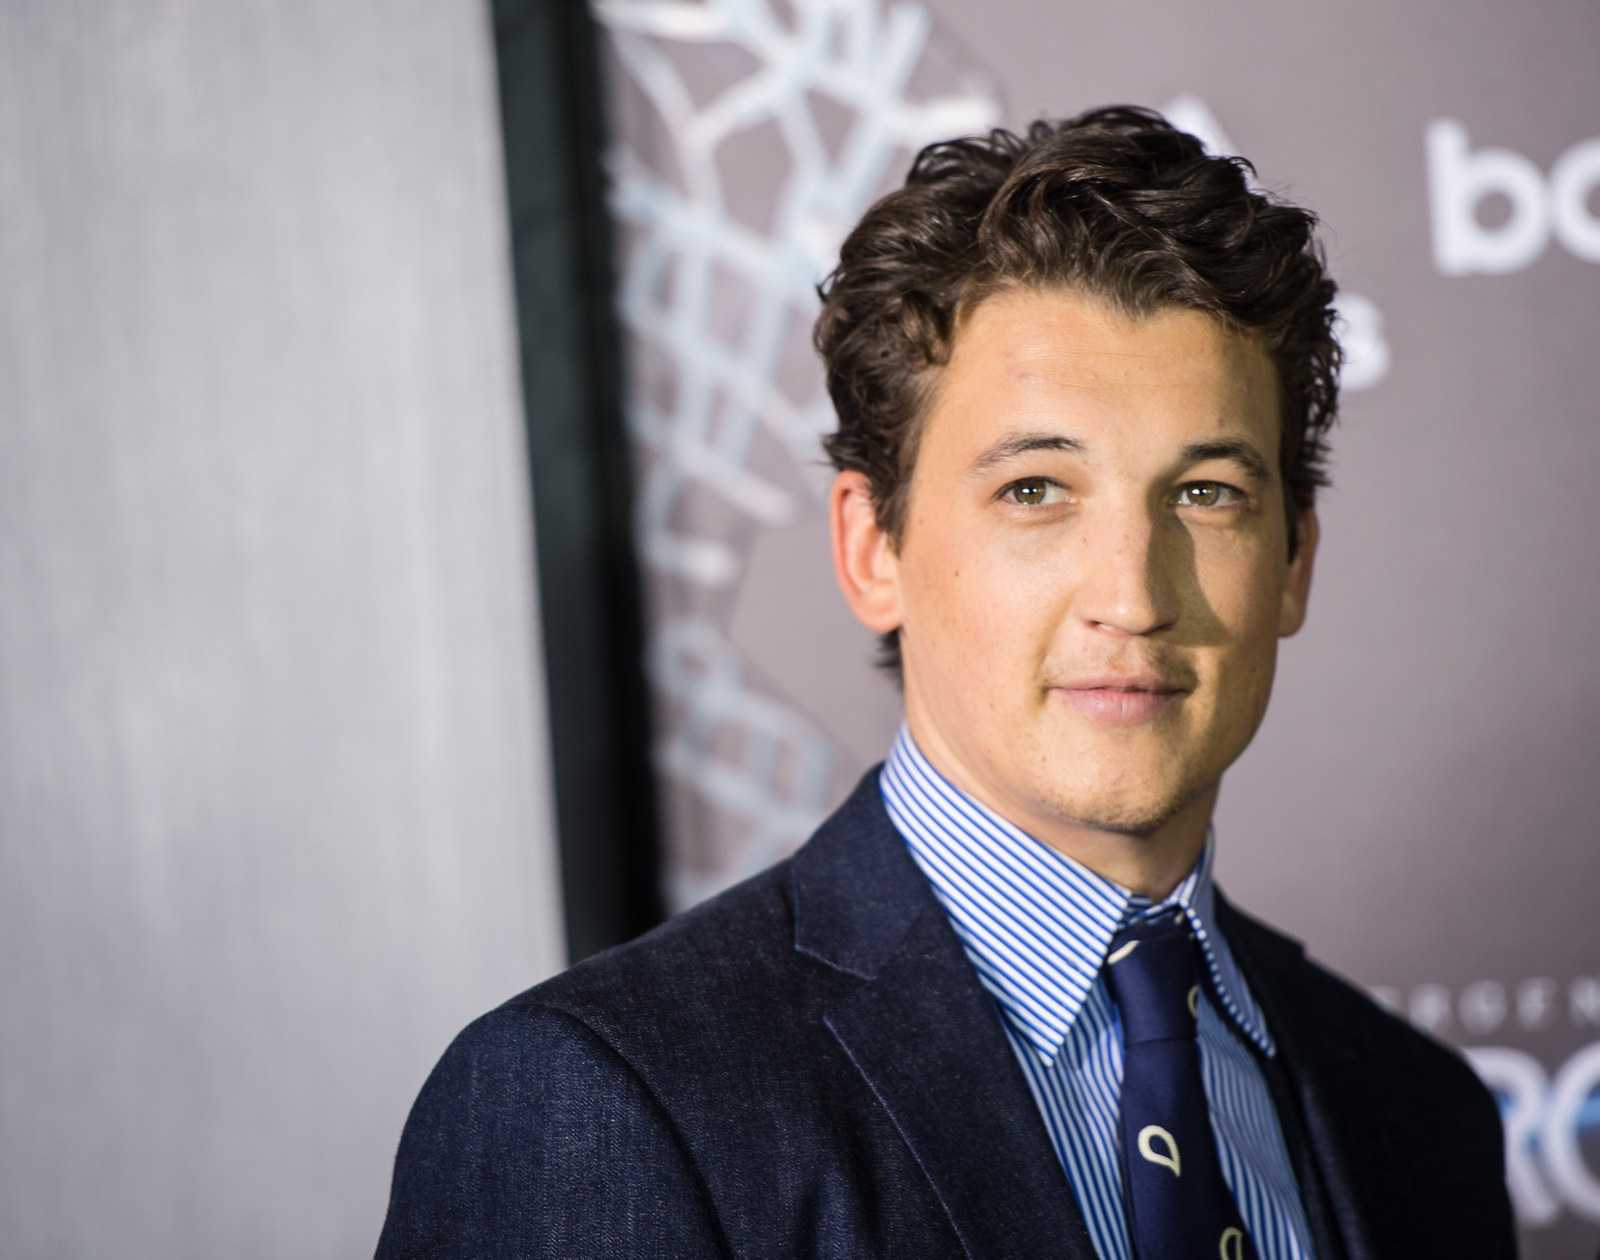 miles teller newsmiles teller фильмы, miles teller instagram, miles teller movies, miles teller height, miles teller drums, miles teller gif, miles teller whiplash, miles teller films, miles teller twitter, miles teller imdb, miles teller 2016, miles teller gif hunt, miles teller boxing movie, miles teller wdw, miles teller drumming, miles teller wiki, miles teller and emma watson, miles teller news, miles teller kinopoisk, miles teller dating